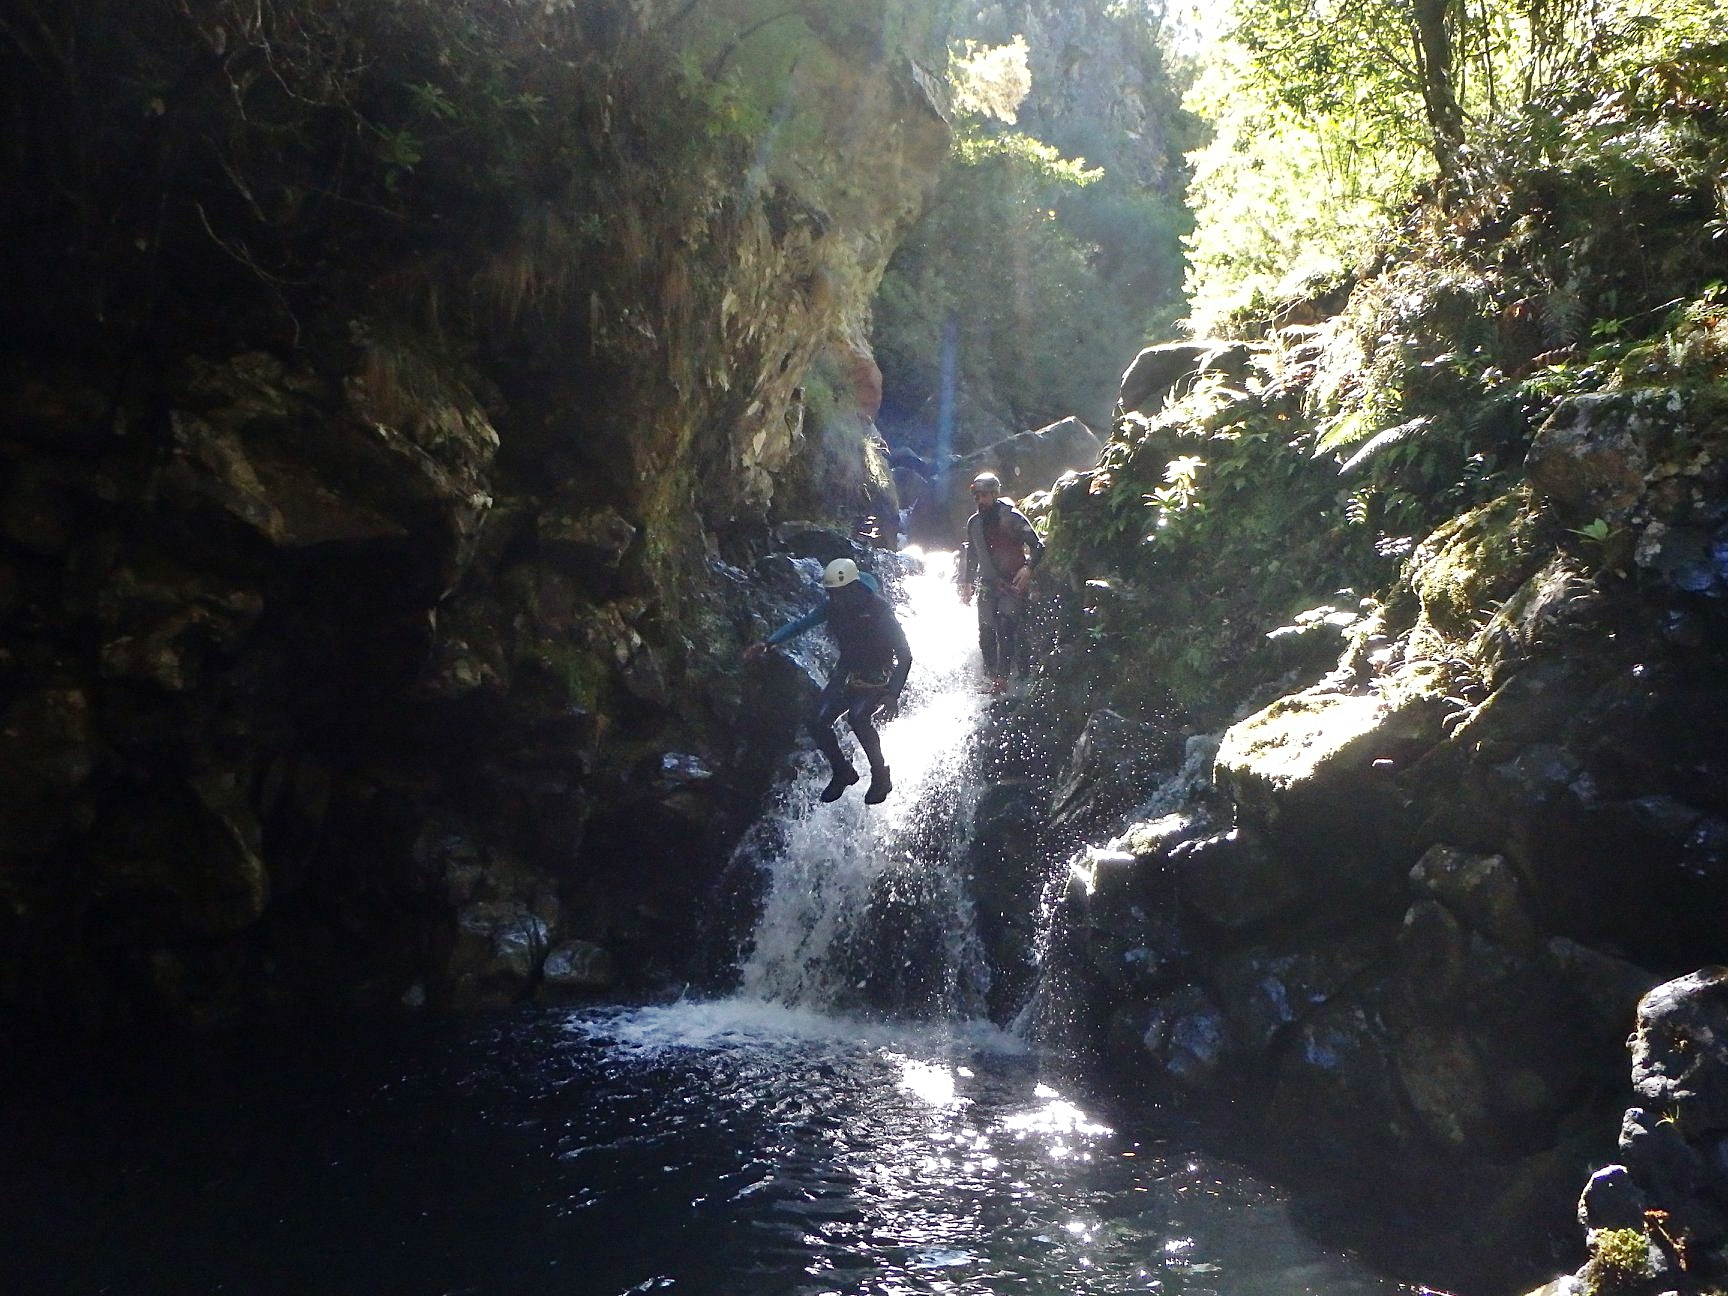 Canyoning in Madeira and the power of overcoming.